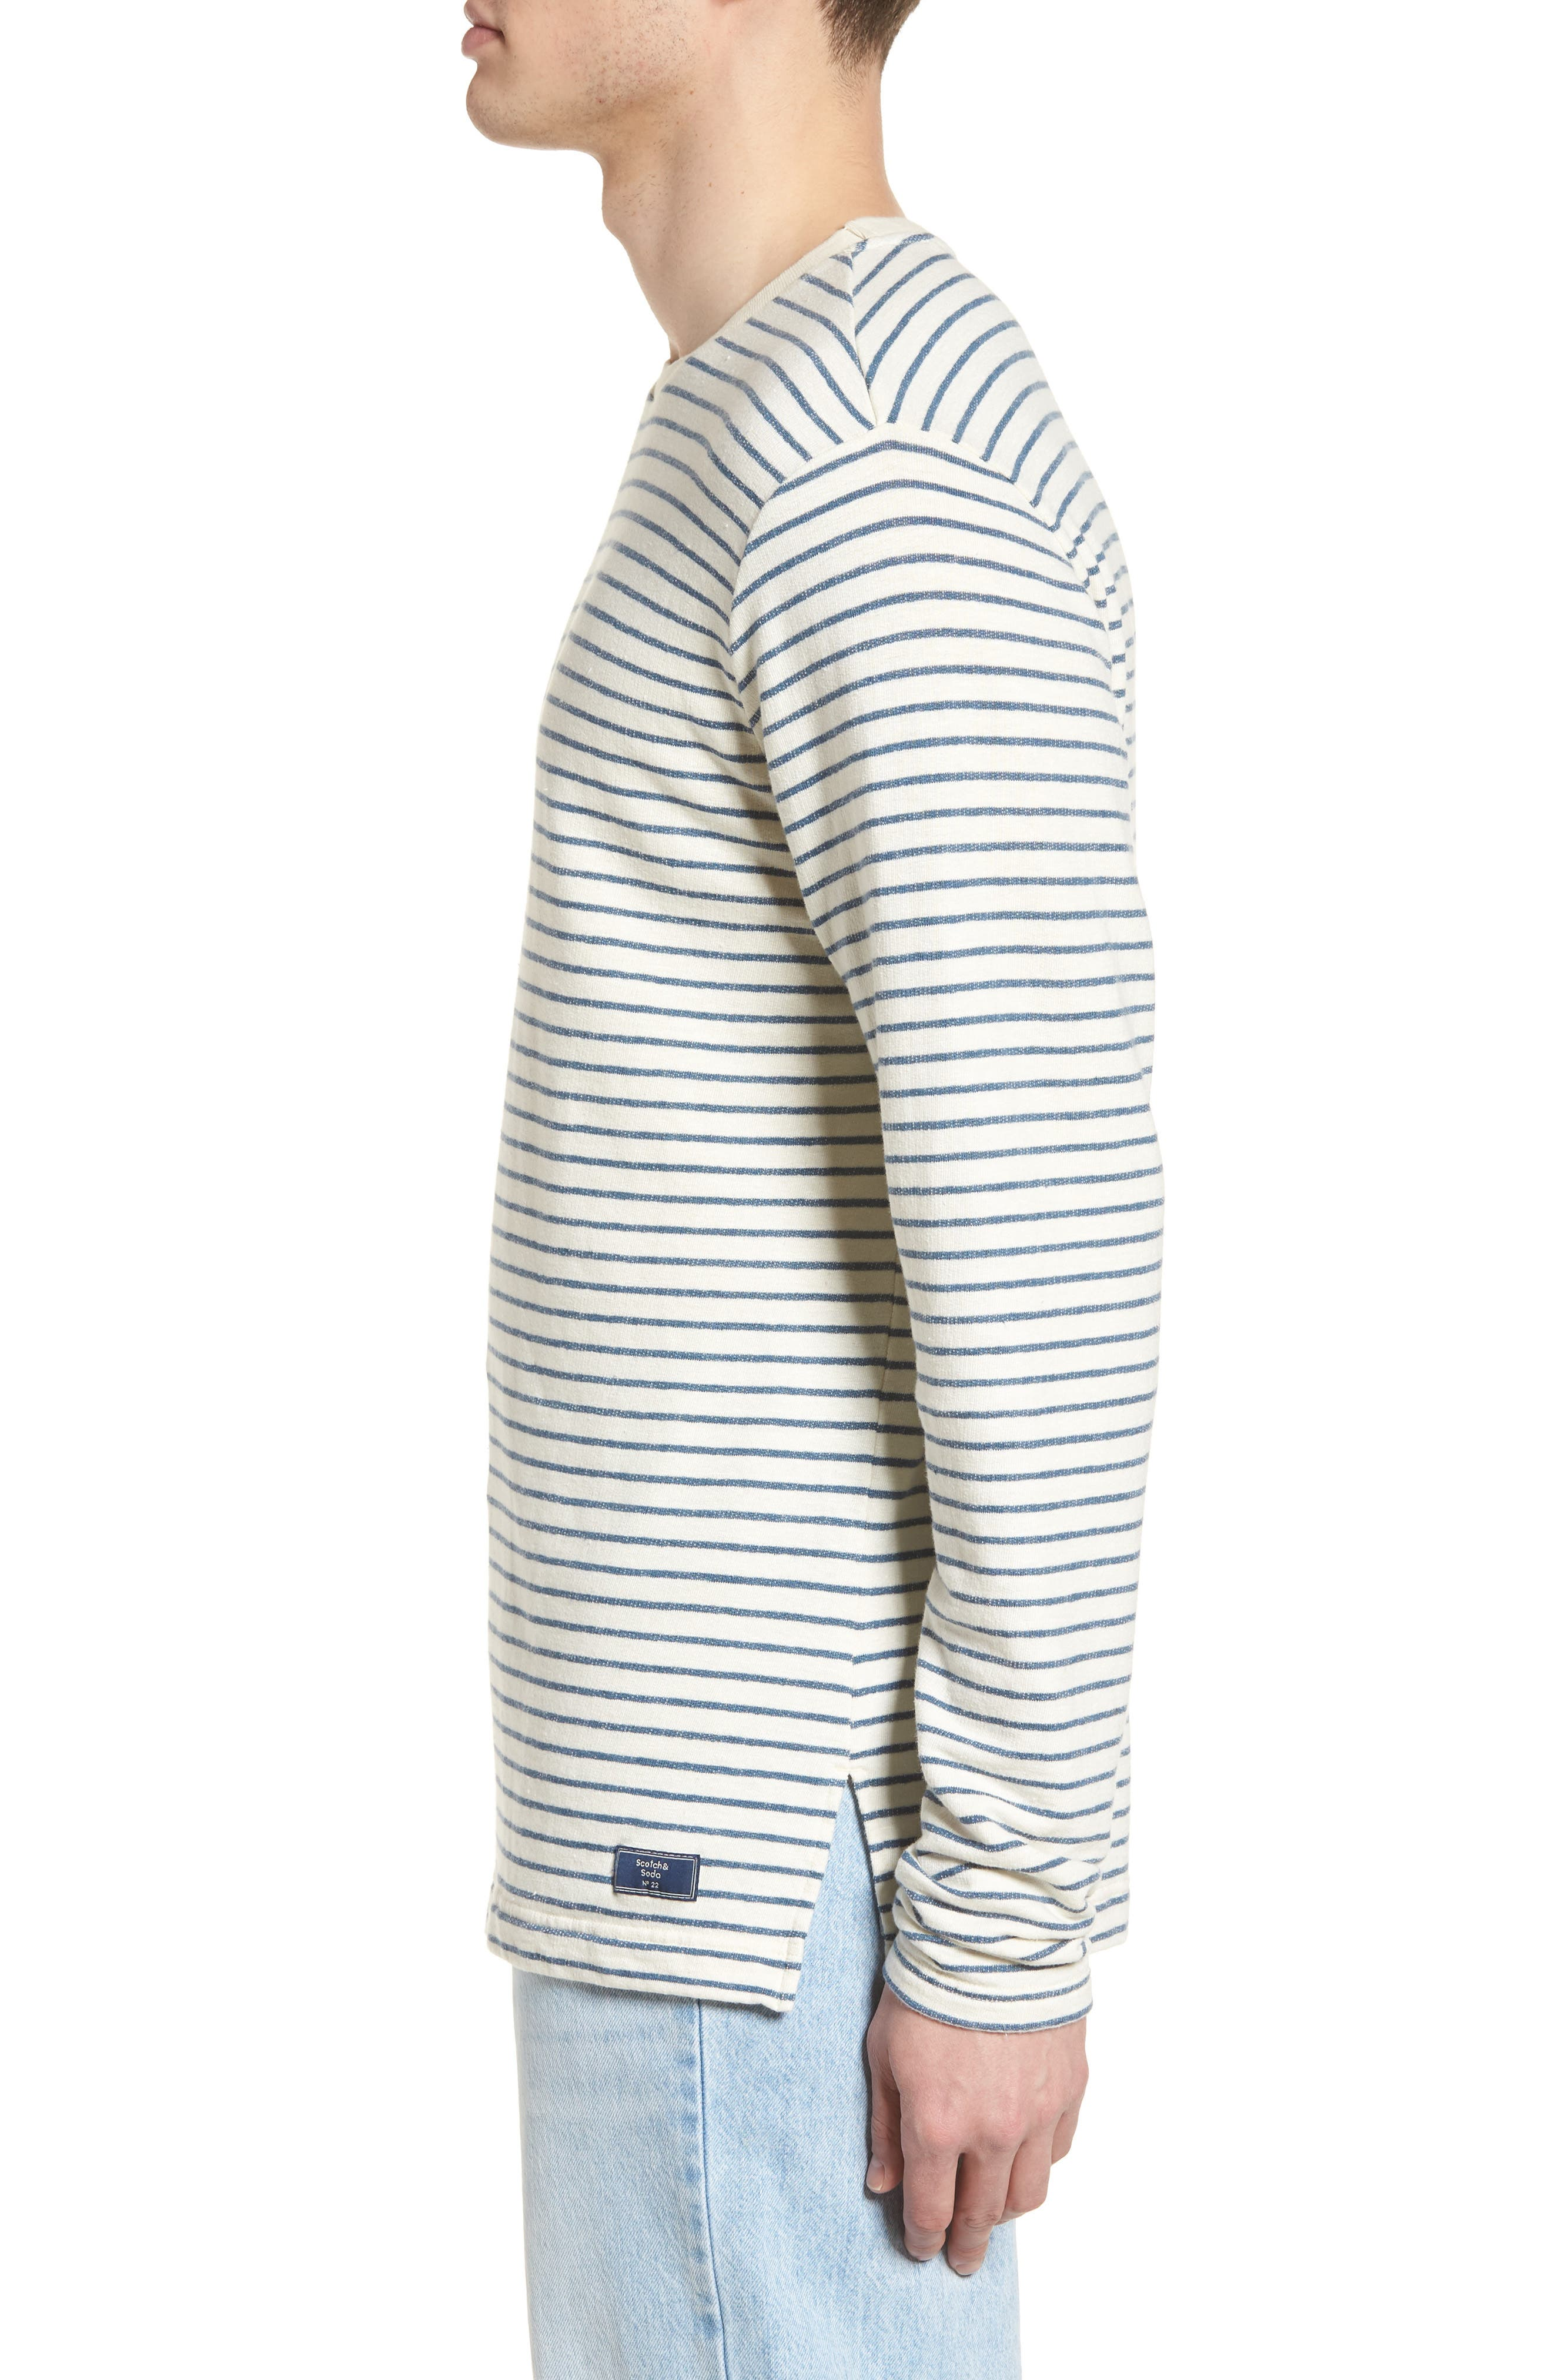 Stripe Crewneck Sweater,                             Alternate thumbnail 3, color,                             250